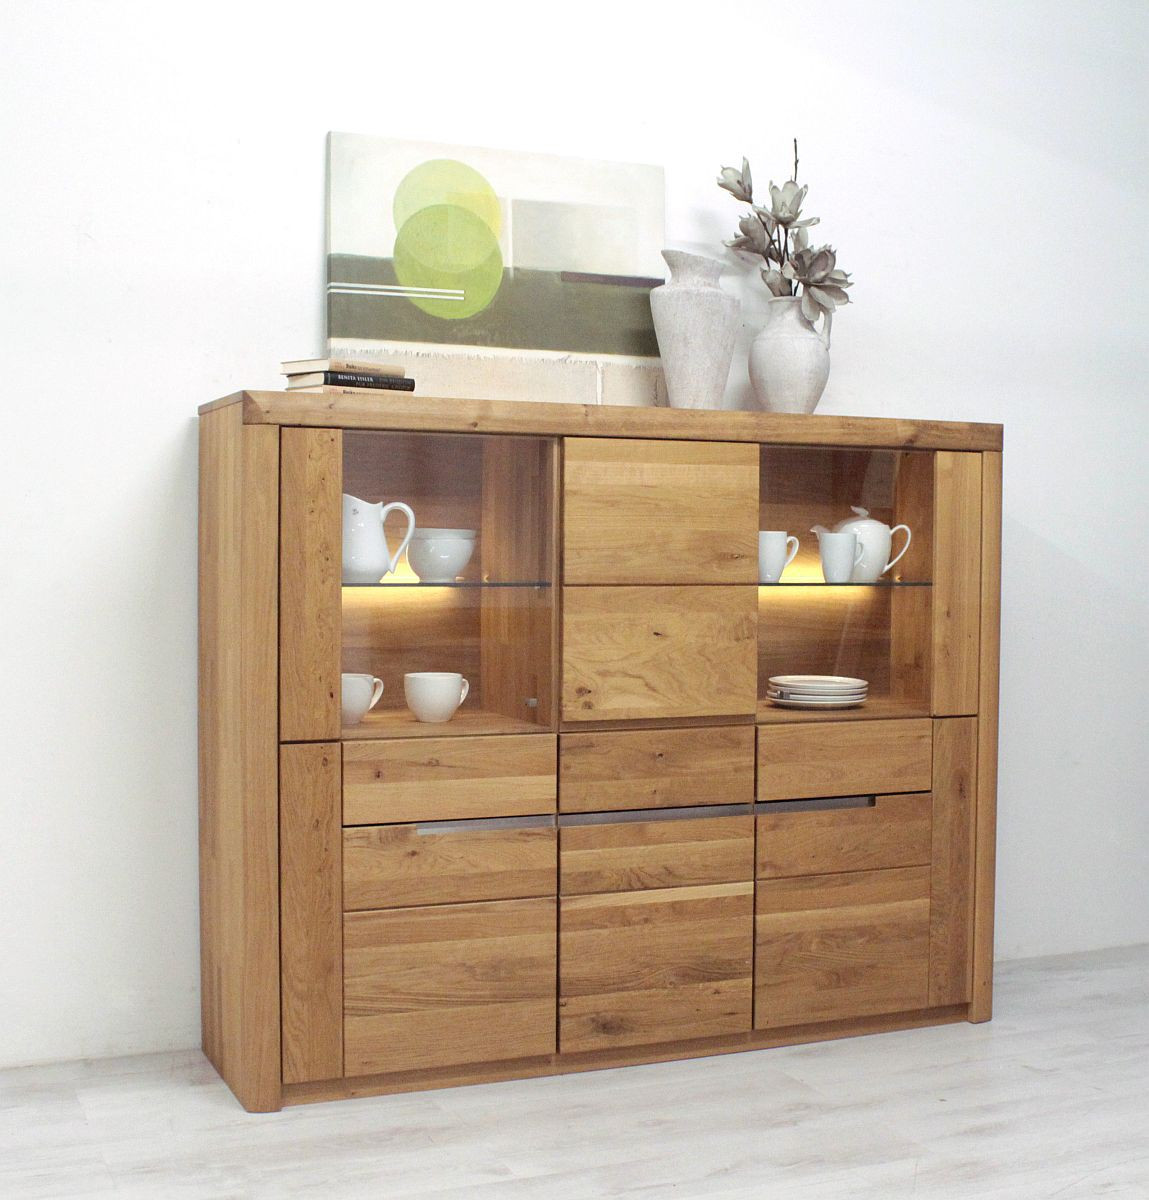 highboard wildeiche massiv solido made in germany. Black Bedroom Furniture Sets. Home Design Ideas